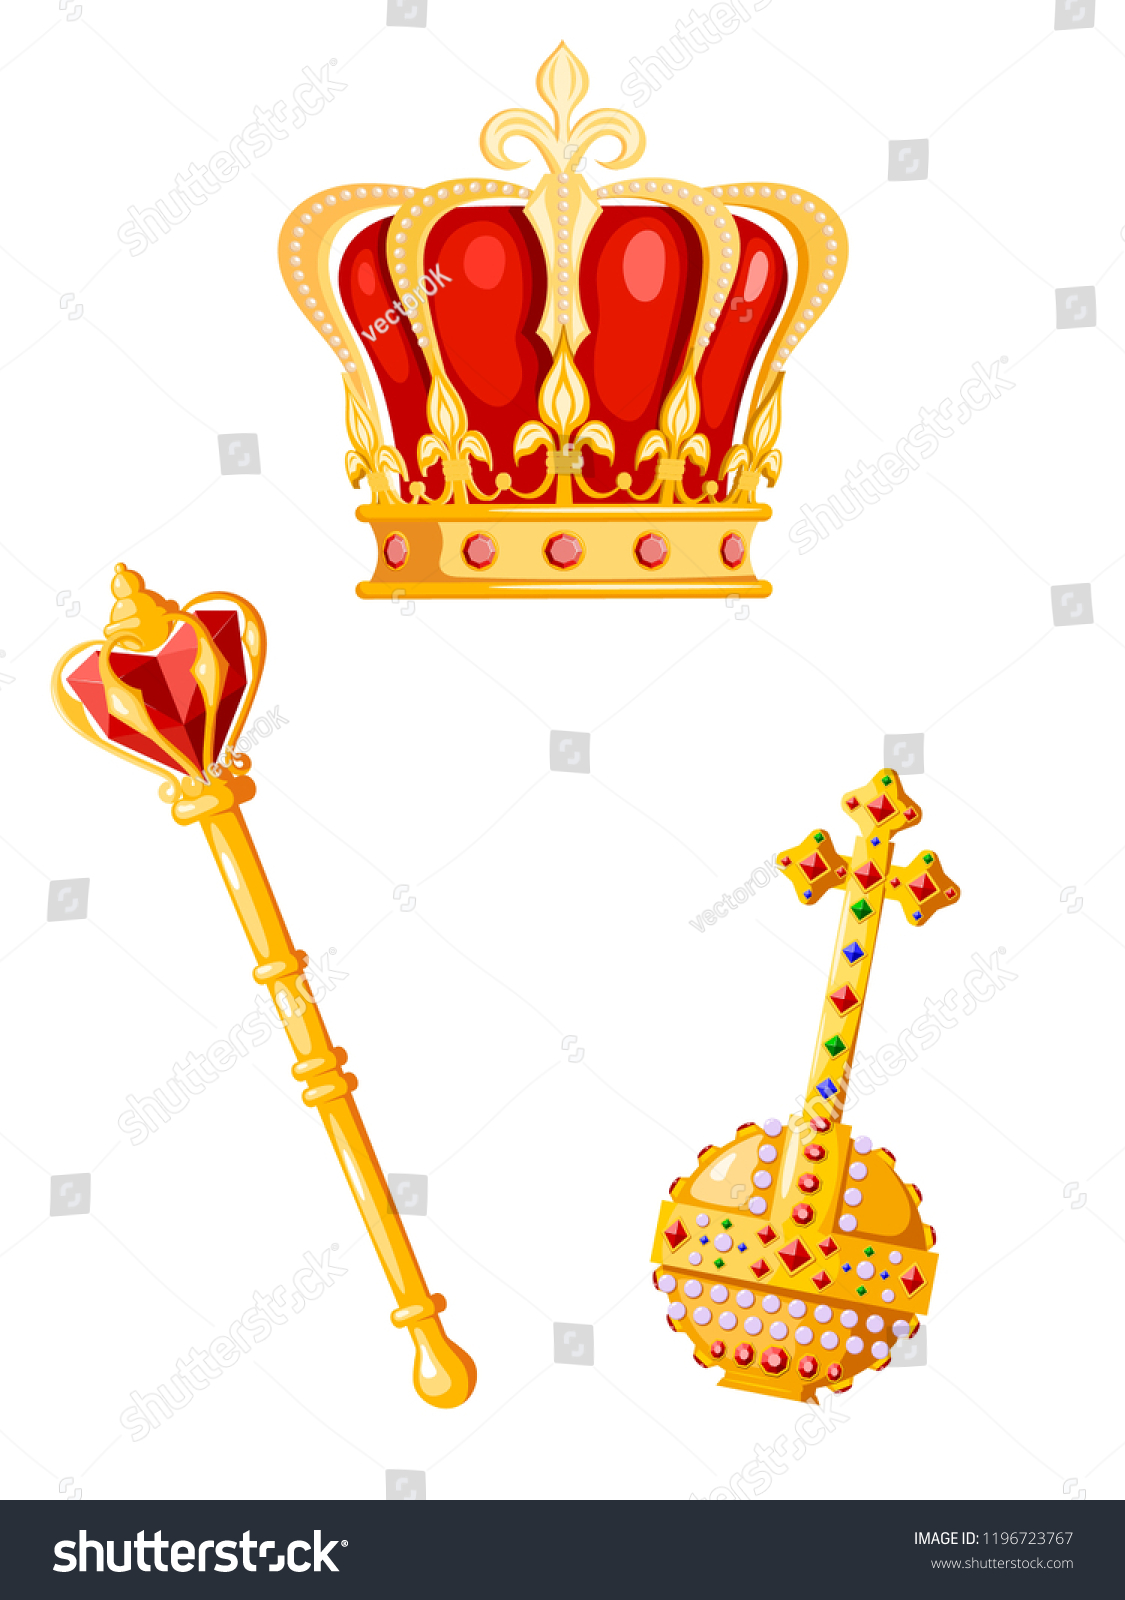 Crown Scepter Orb On White Background Stock Vector Royalty Free 1196723767 The crown is a historical drama streaming television series about the reign of queen elizabeth ii, created and principally written by peter morgan. https www shutterstock com image vector crown scepter orb on white background 1196723767